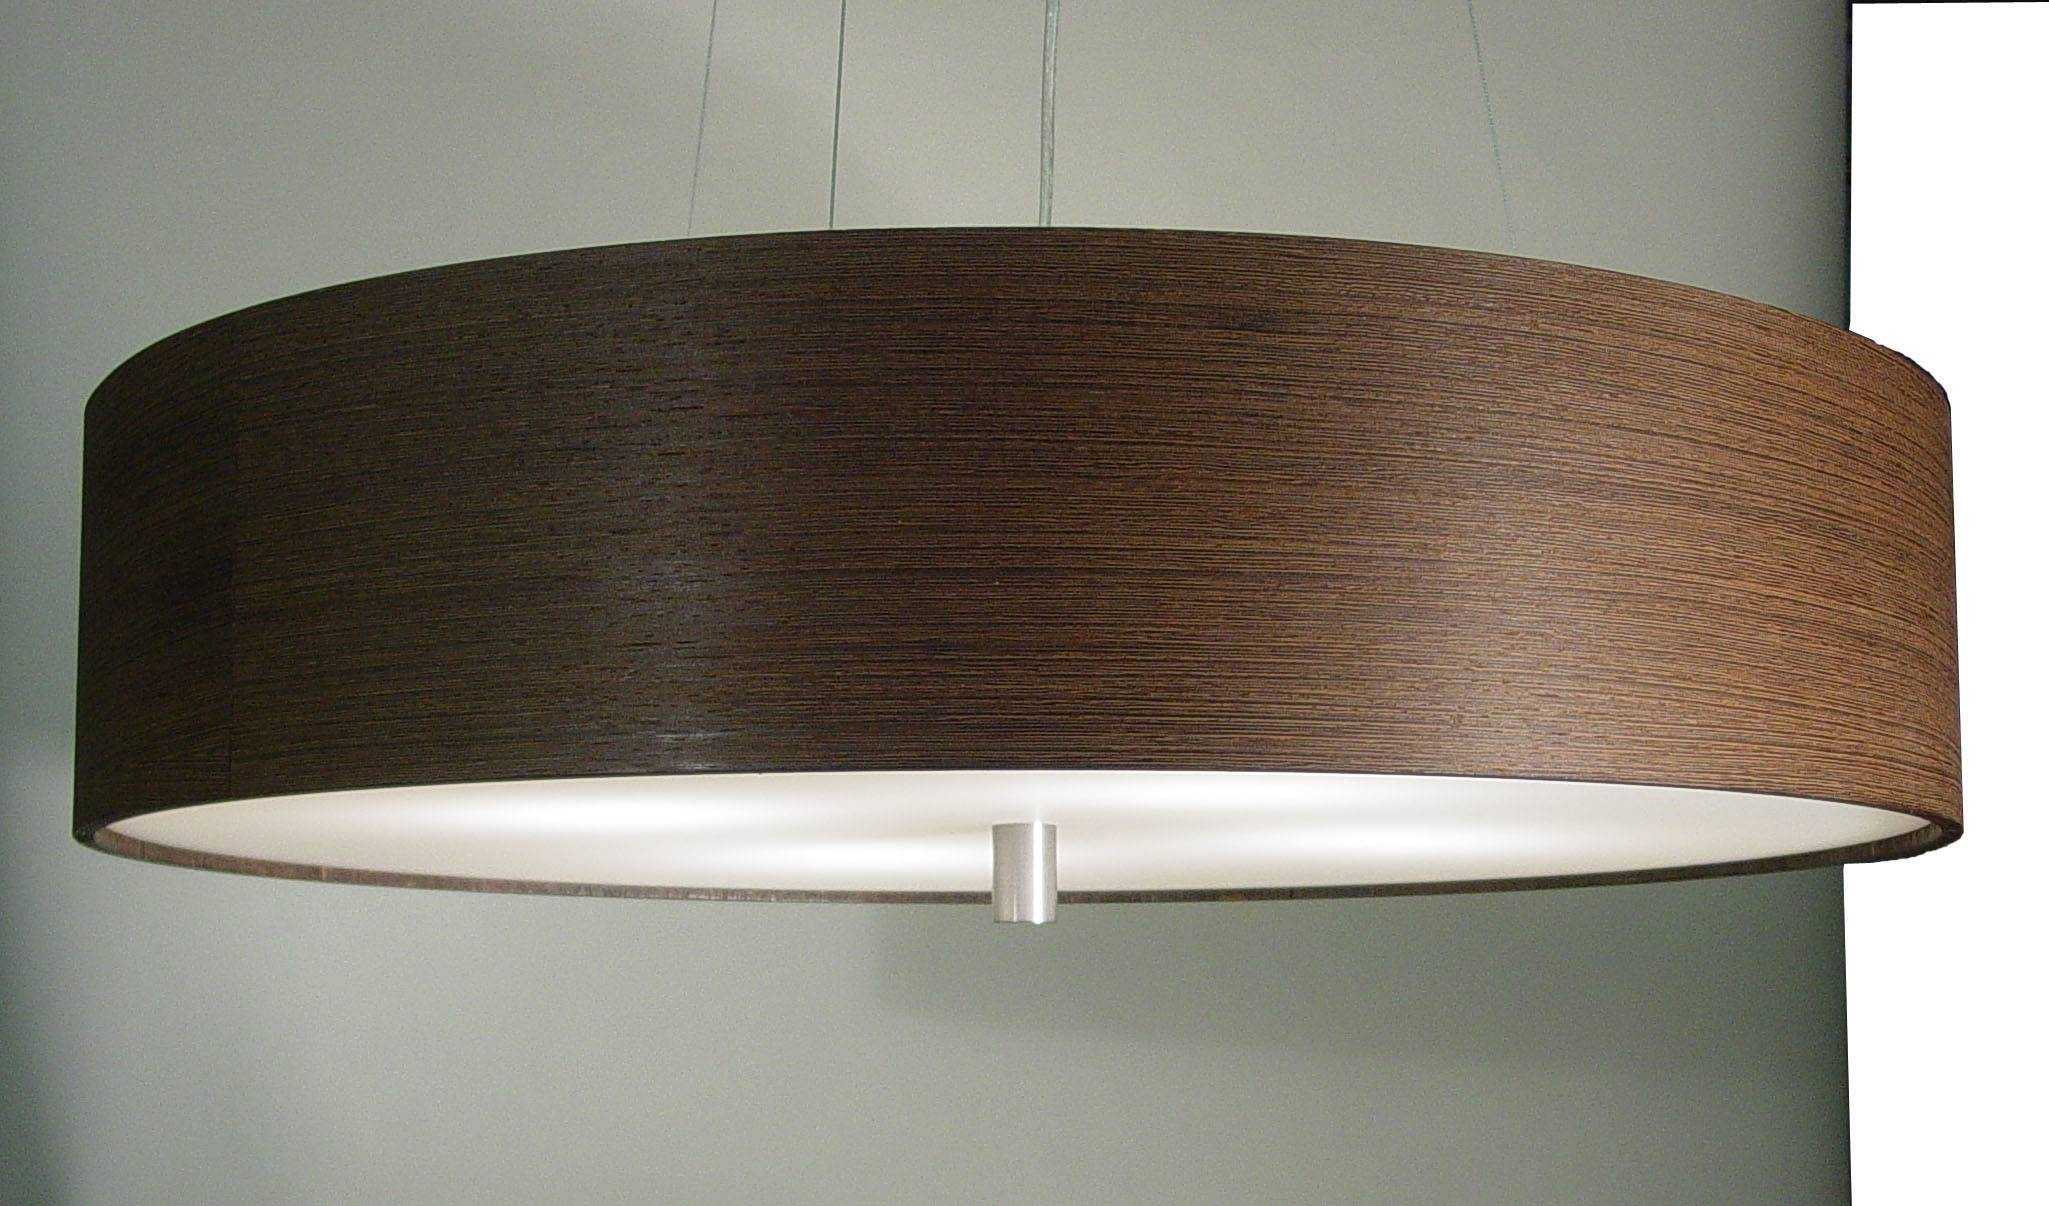 Holiday Gift Wood Veneer Pendant Lamp Homemade Wood Pendant Light inside Wood Veneer Pendant Lights (Image 7 of 15)